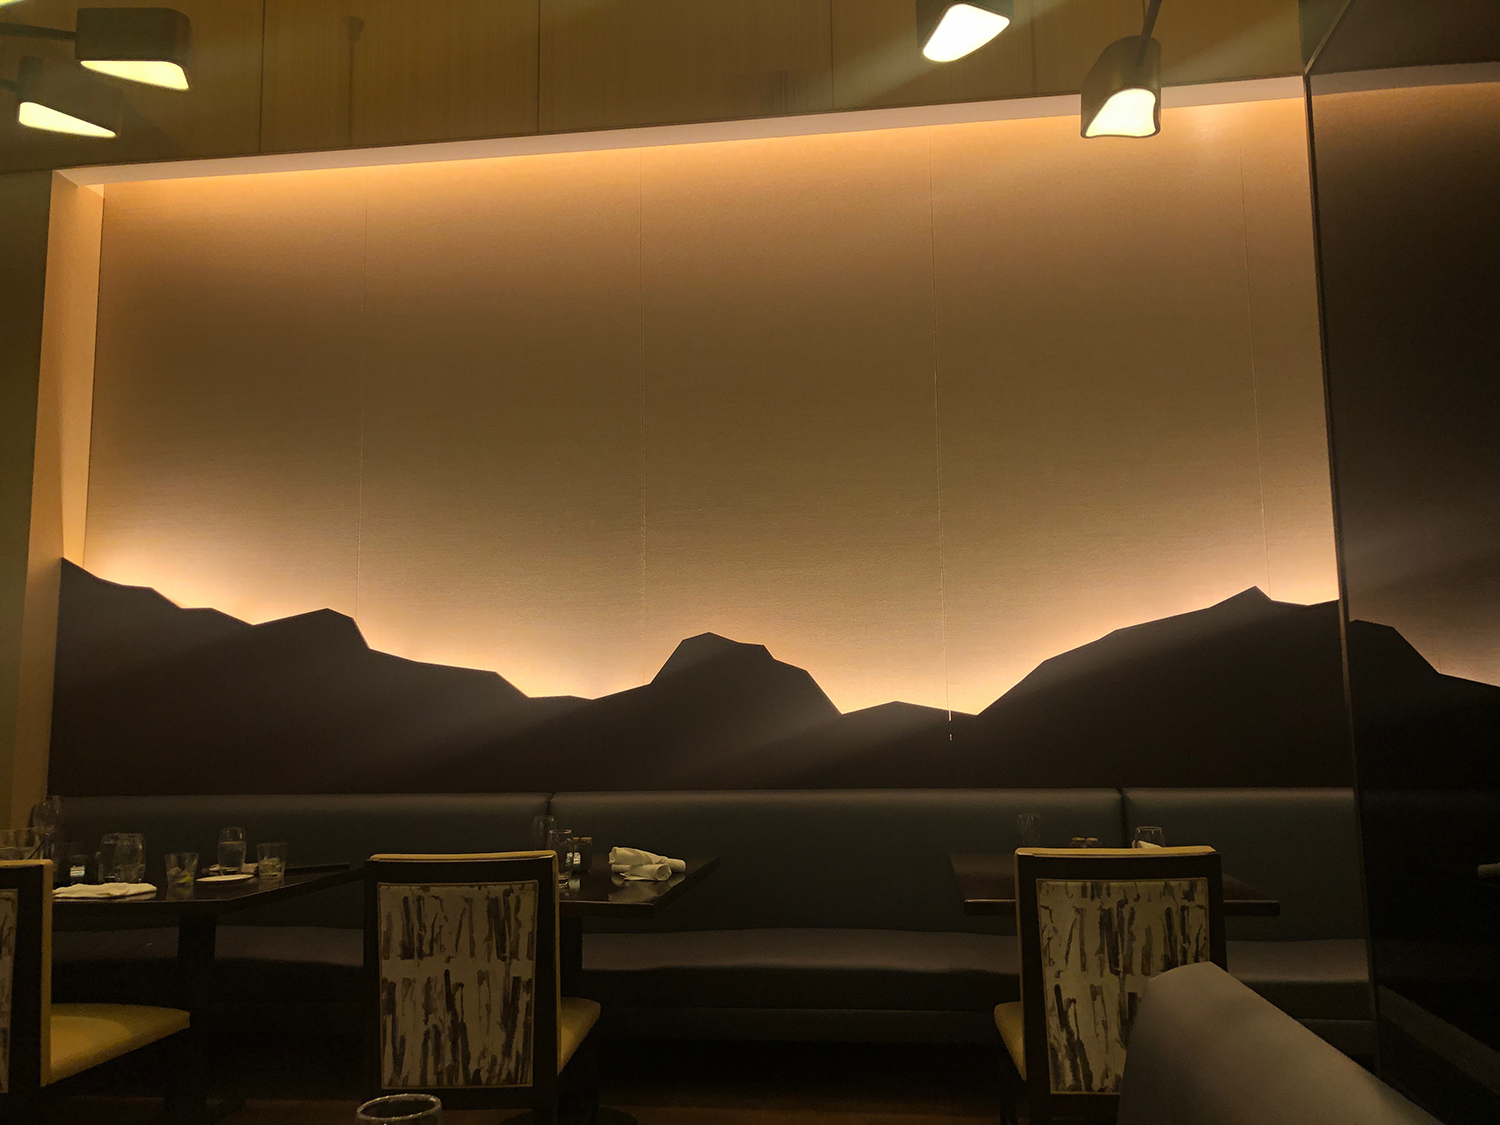 A beautiful sunset motif is part of the decor at the Resort's Lobby Bar & Grill.